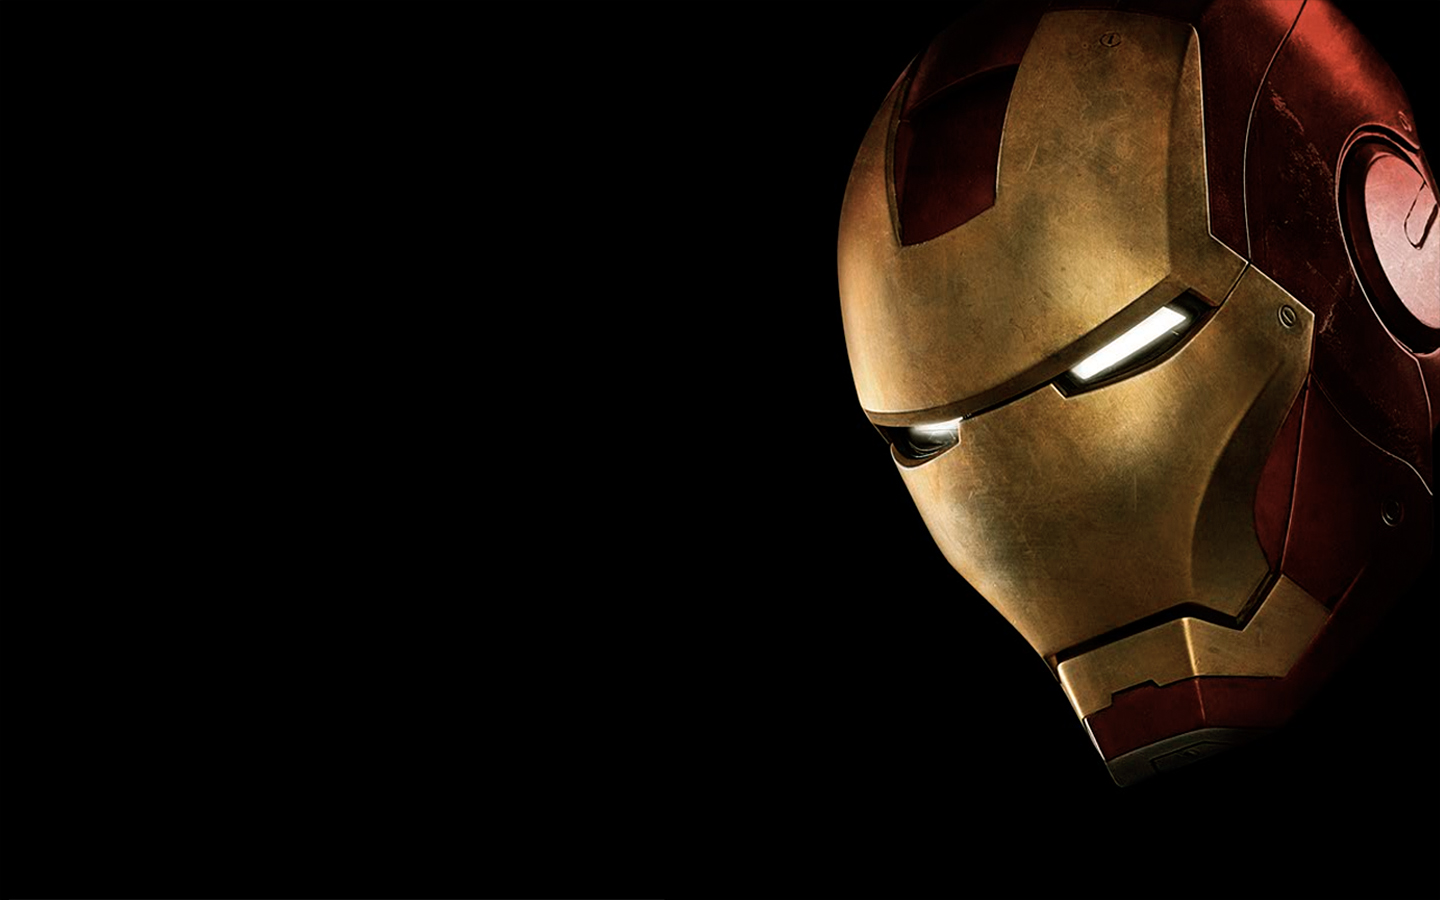 ironman wallpaper super hero